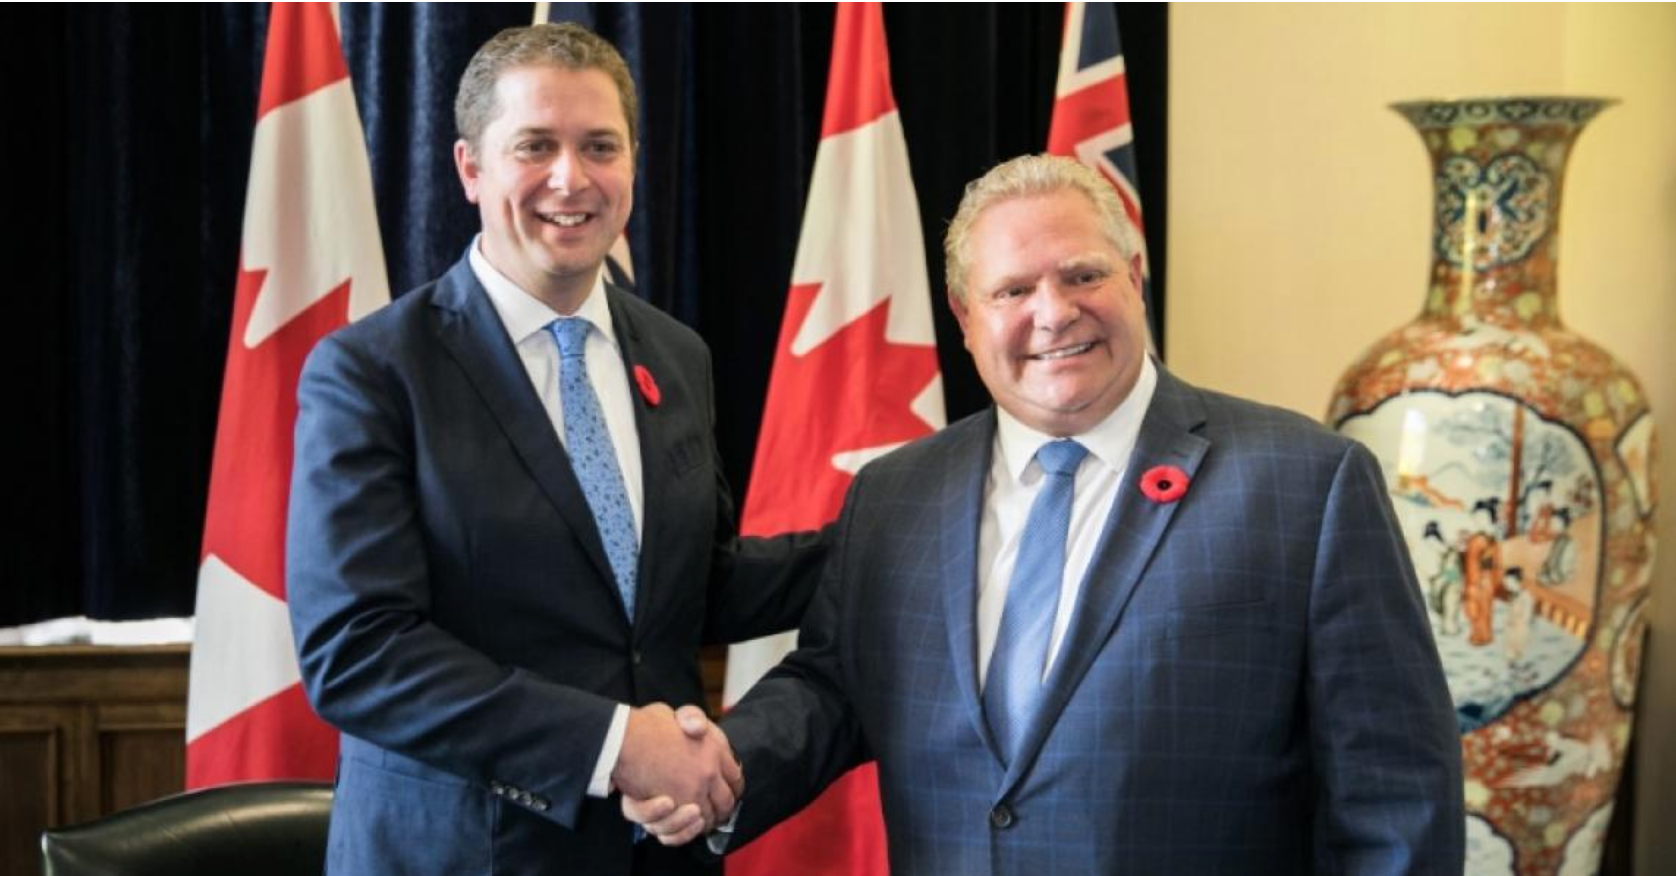 Help us launch powerful ad campaigns targeting the voters Scheer's counting on to win